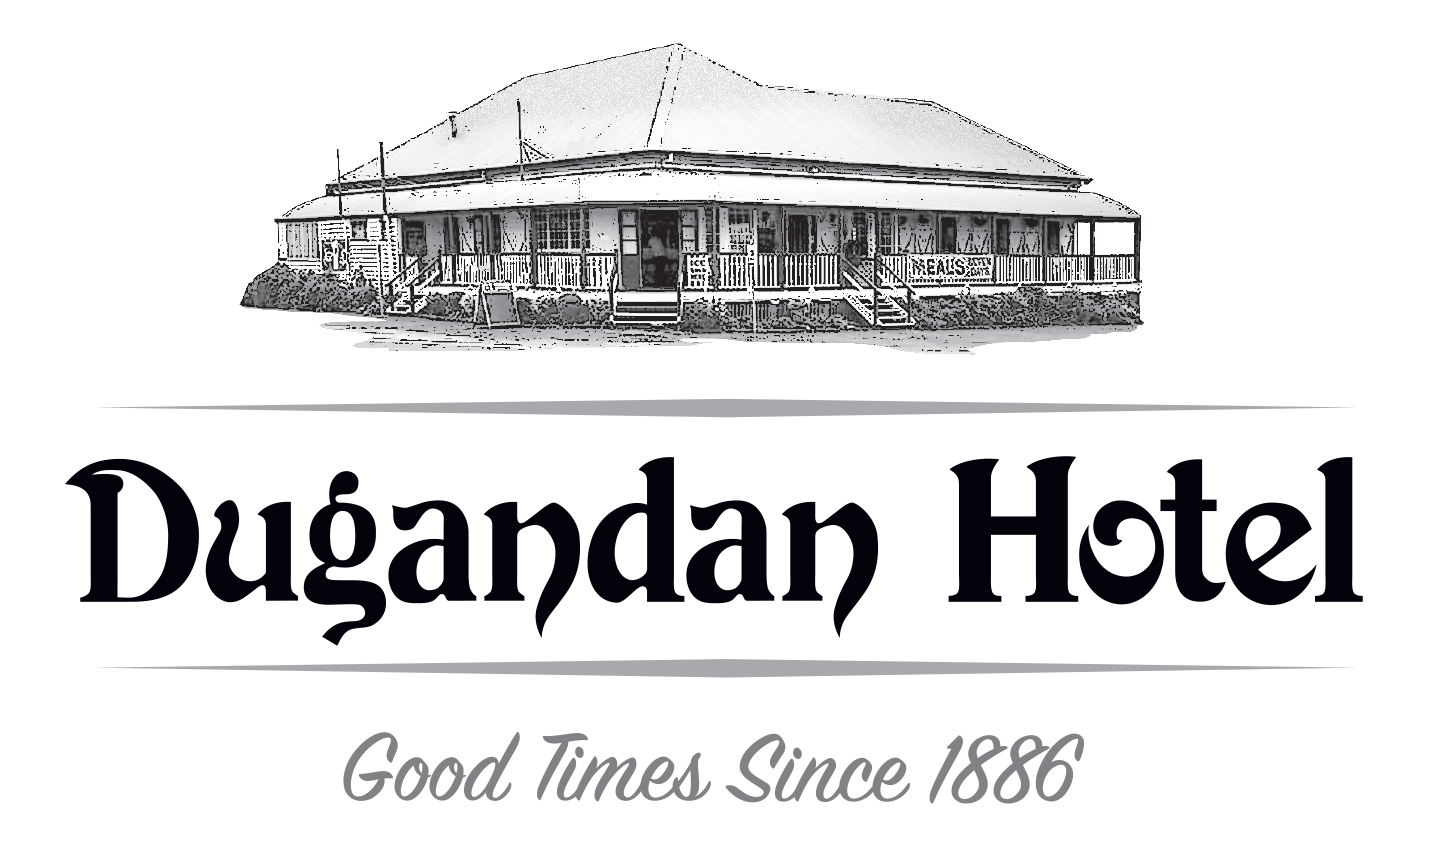 Dugandan Hotel - Whitsundays Accommodation